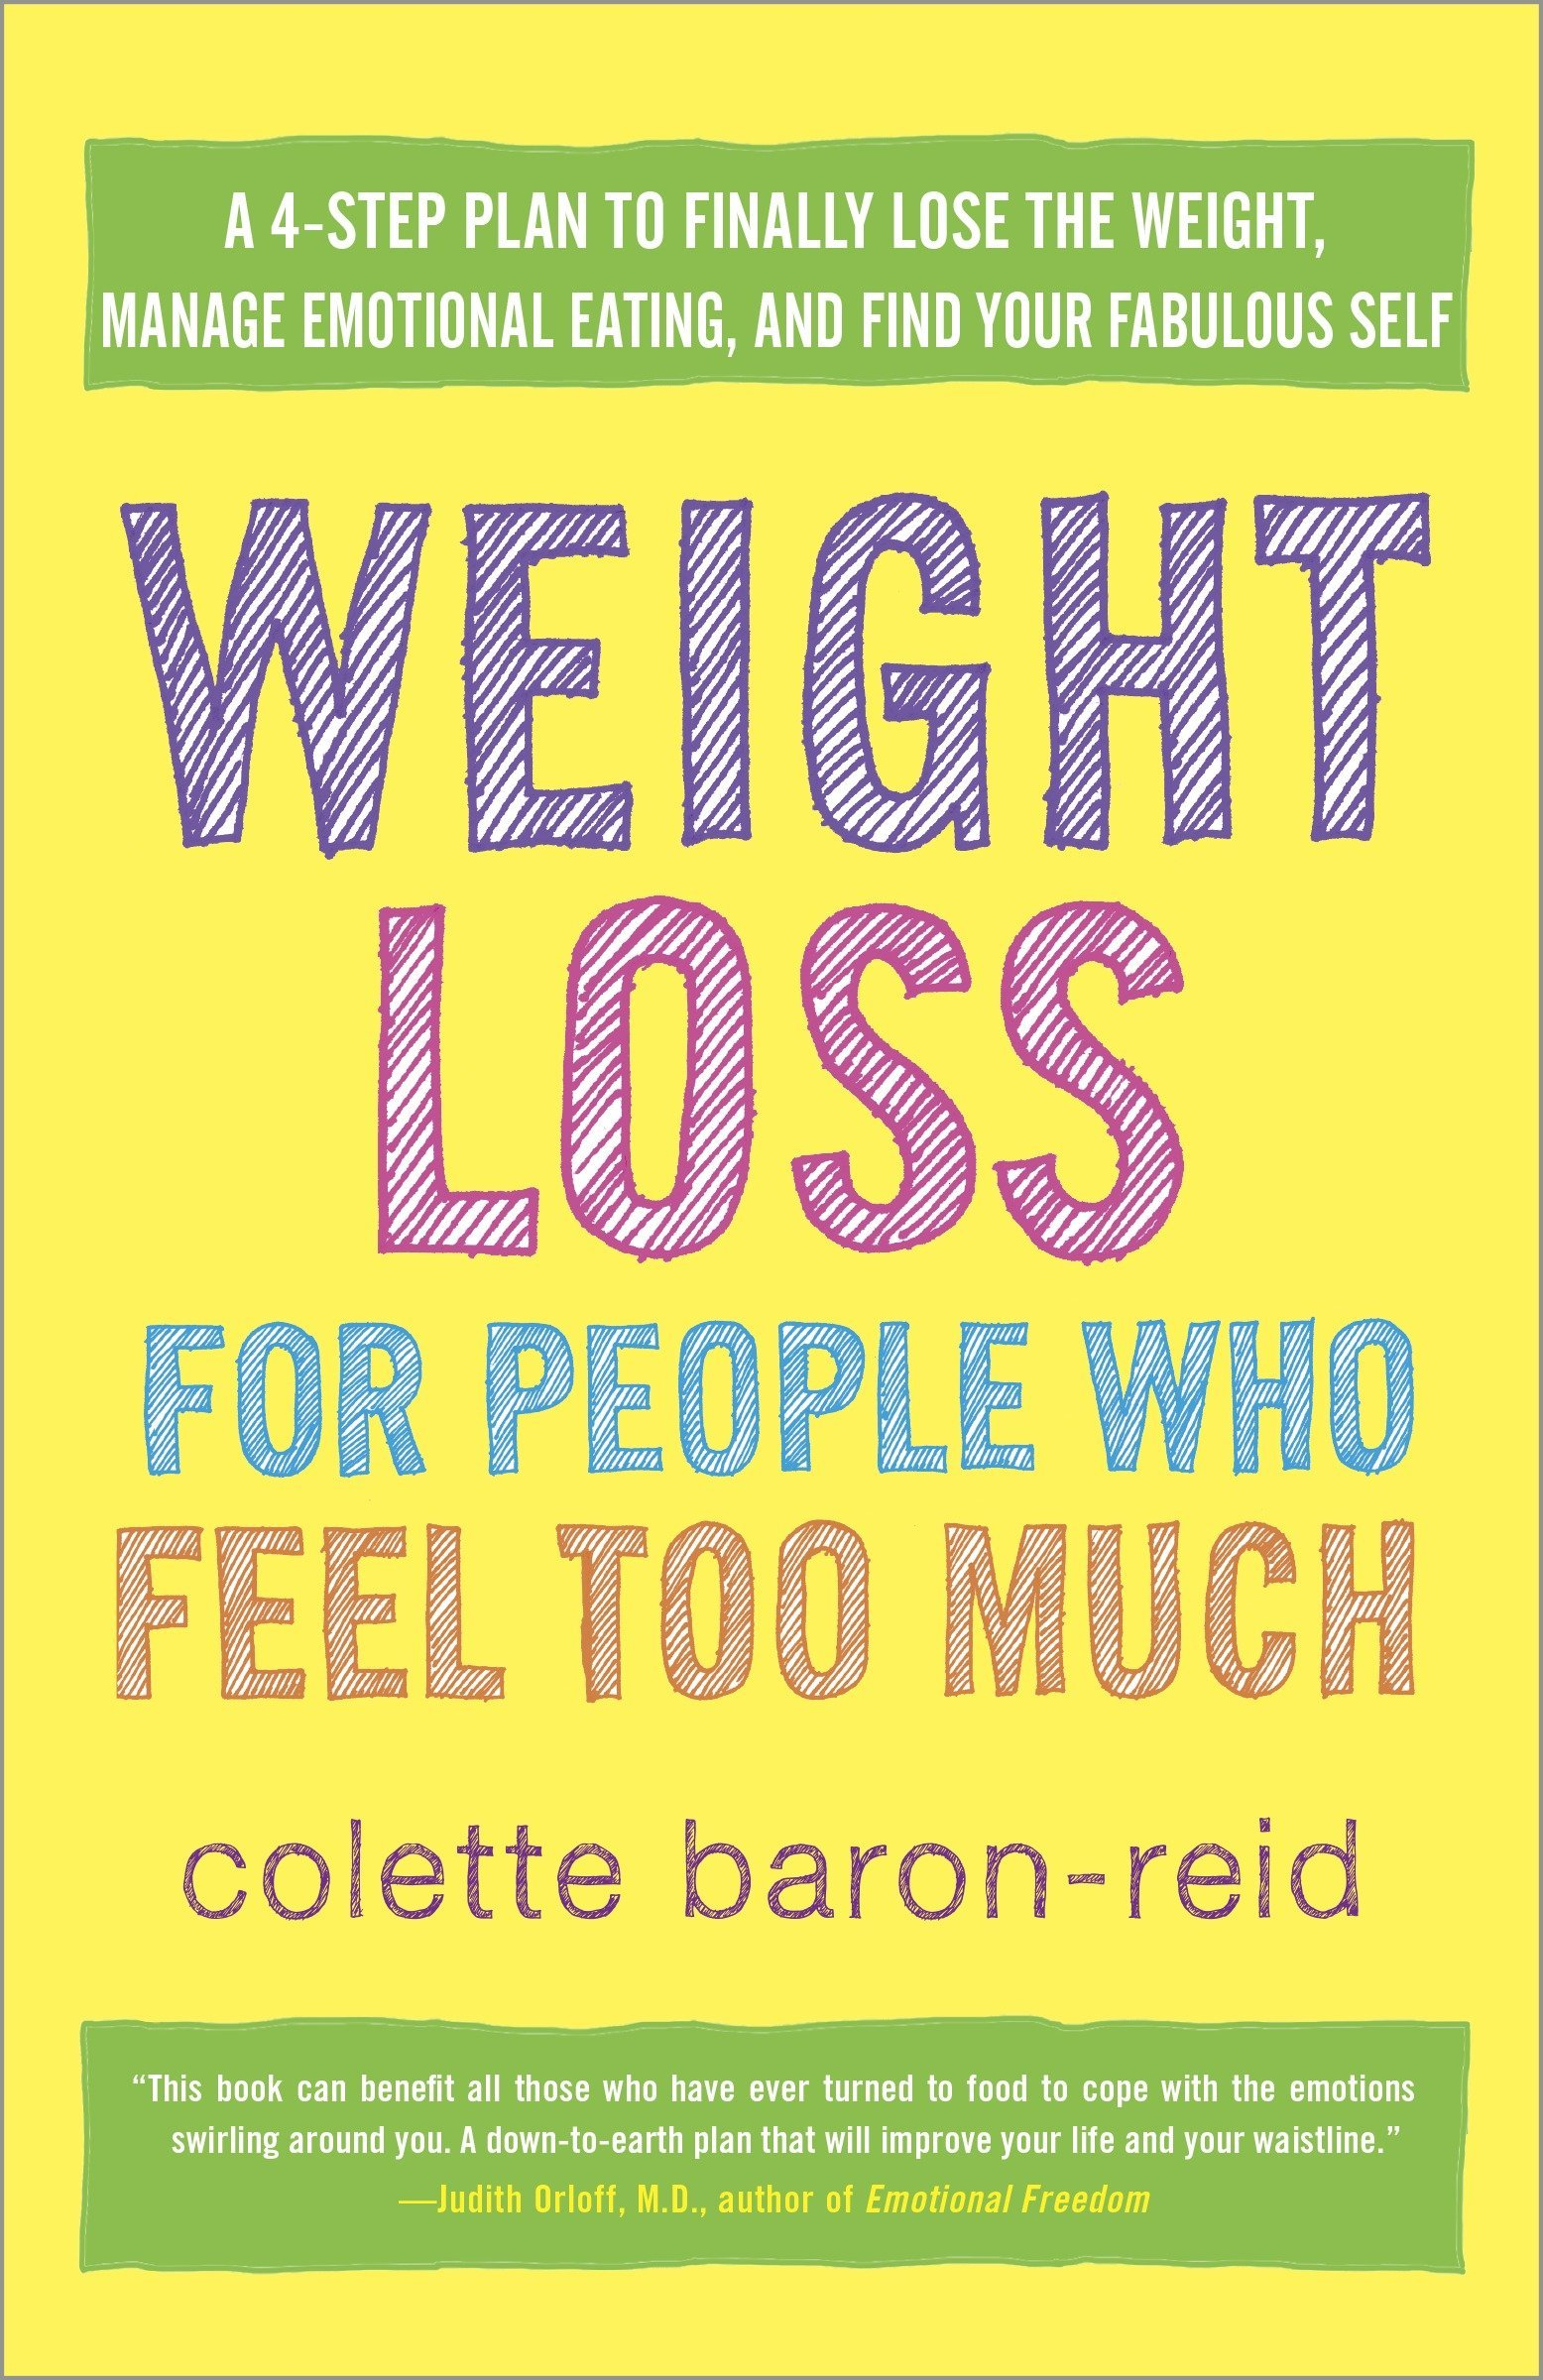 Weight Loss For People Who Feel Too Much  A 4 Step Plan To Finally Lose The Weight Manage Emotional Eating And Find Your Fabulous Self